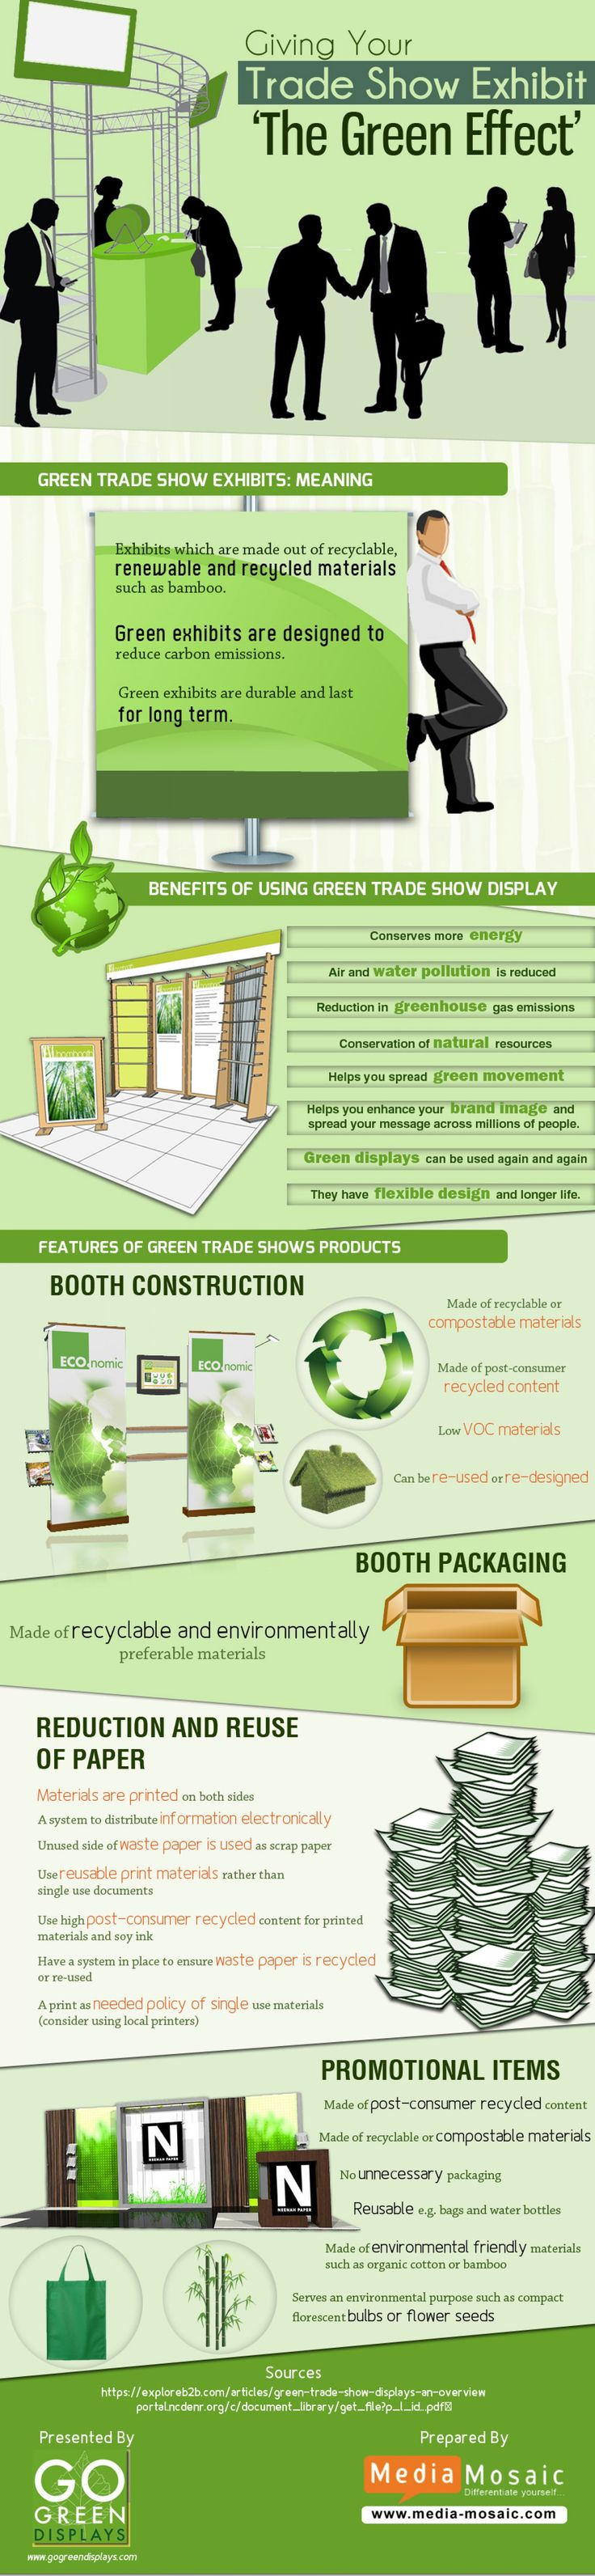 Giving Your #TradeShow Exhibit 'The #Green Effect'